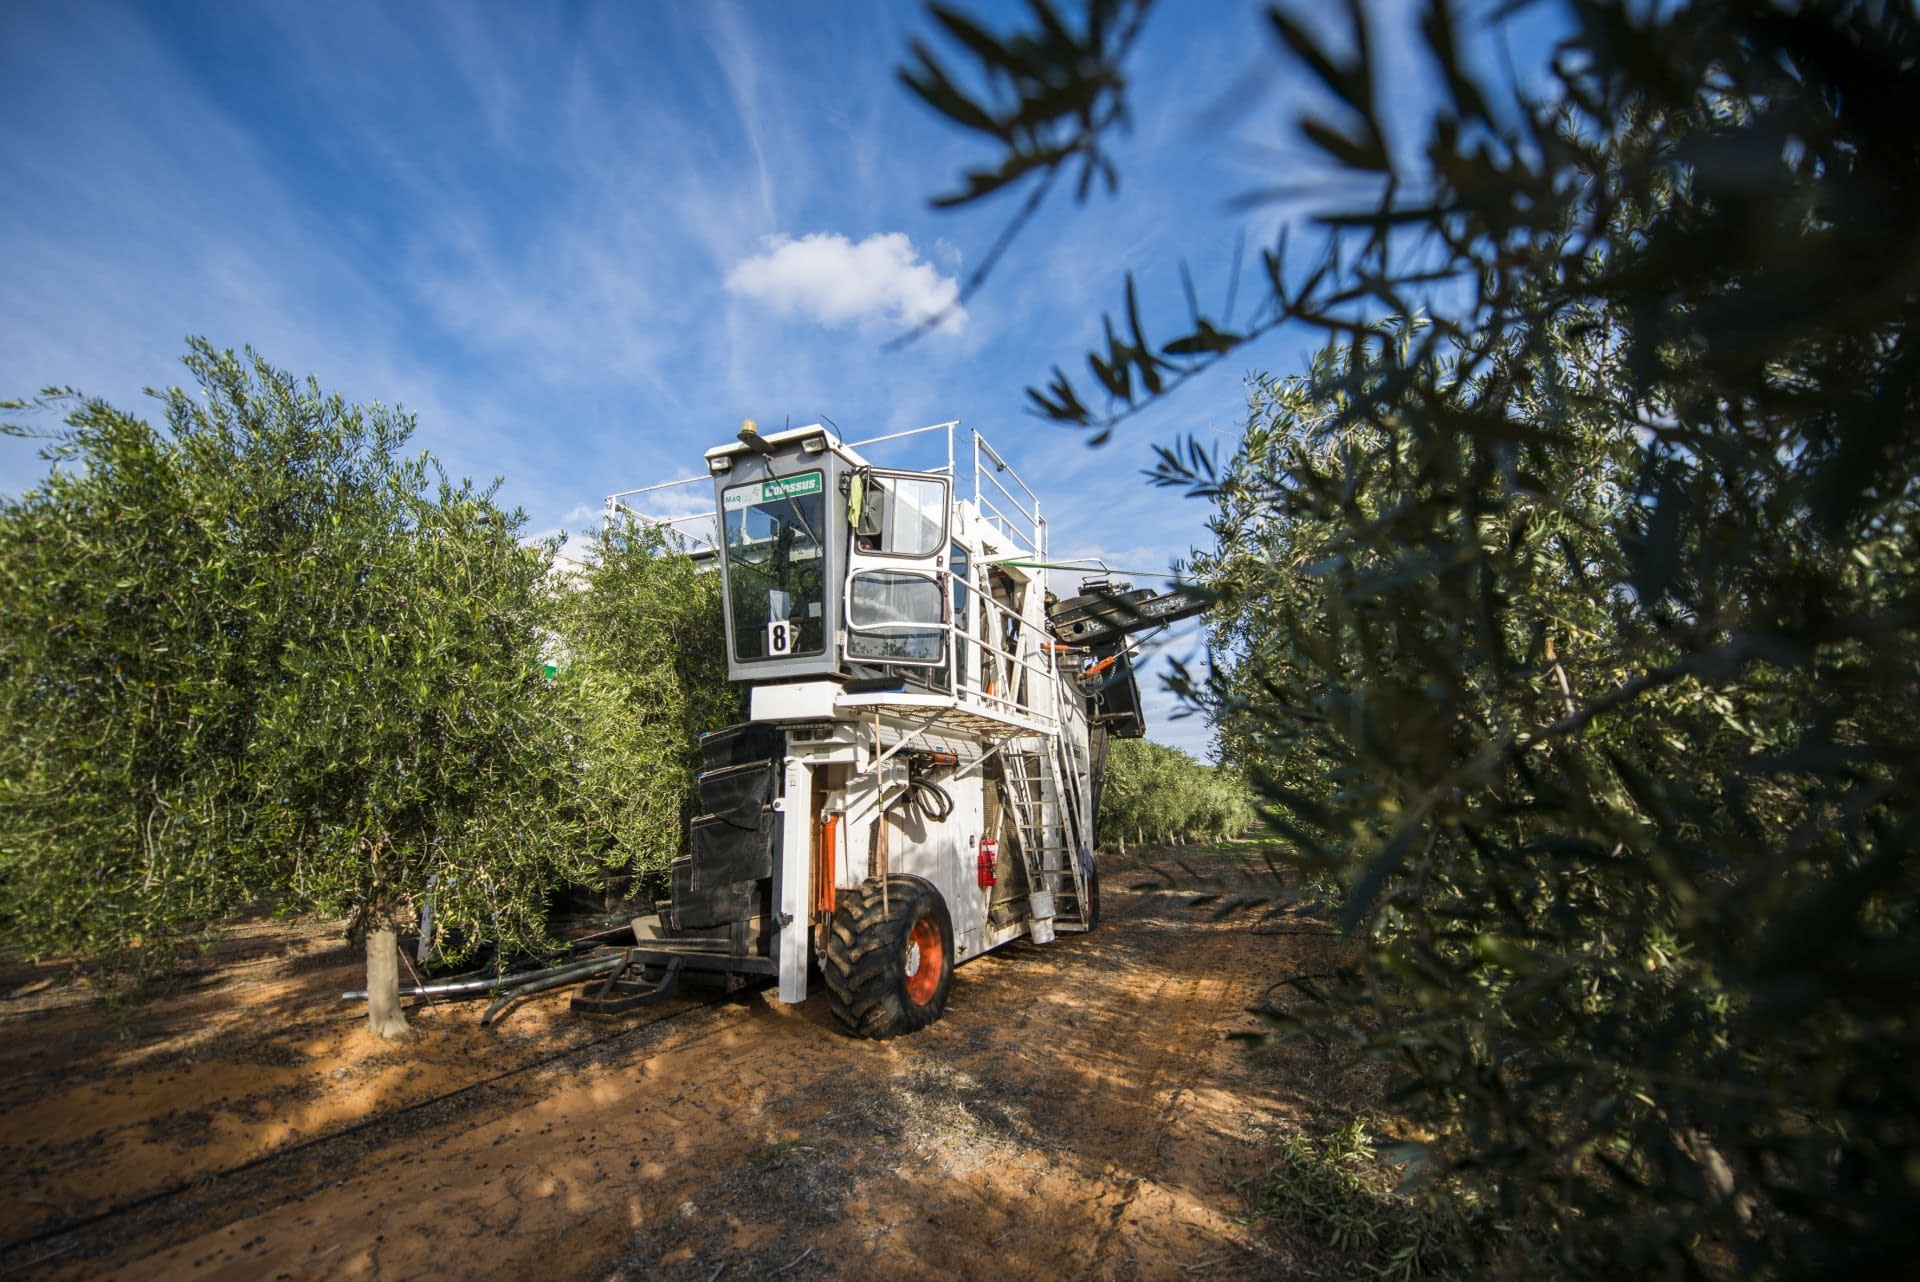 australia-and-new-zealand-business-production-after-years-of-drought-and-covid-australians-celebrate-recordbreaking-harvest-olive-oil-times